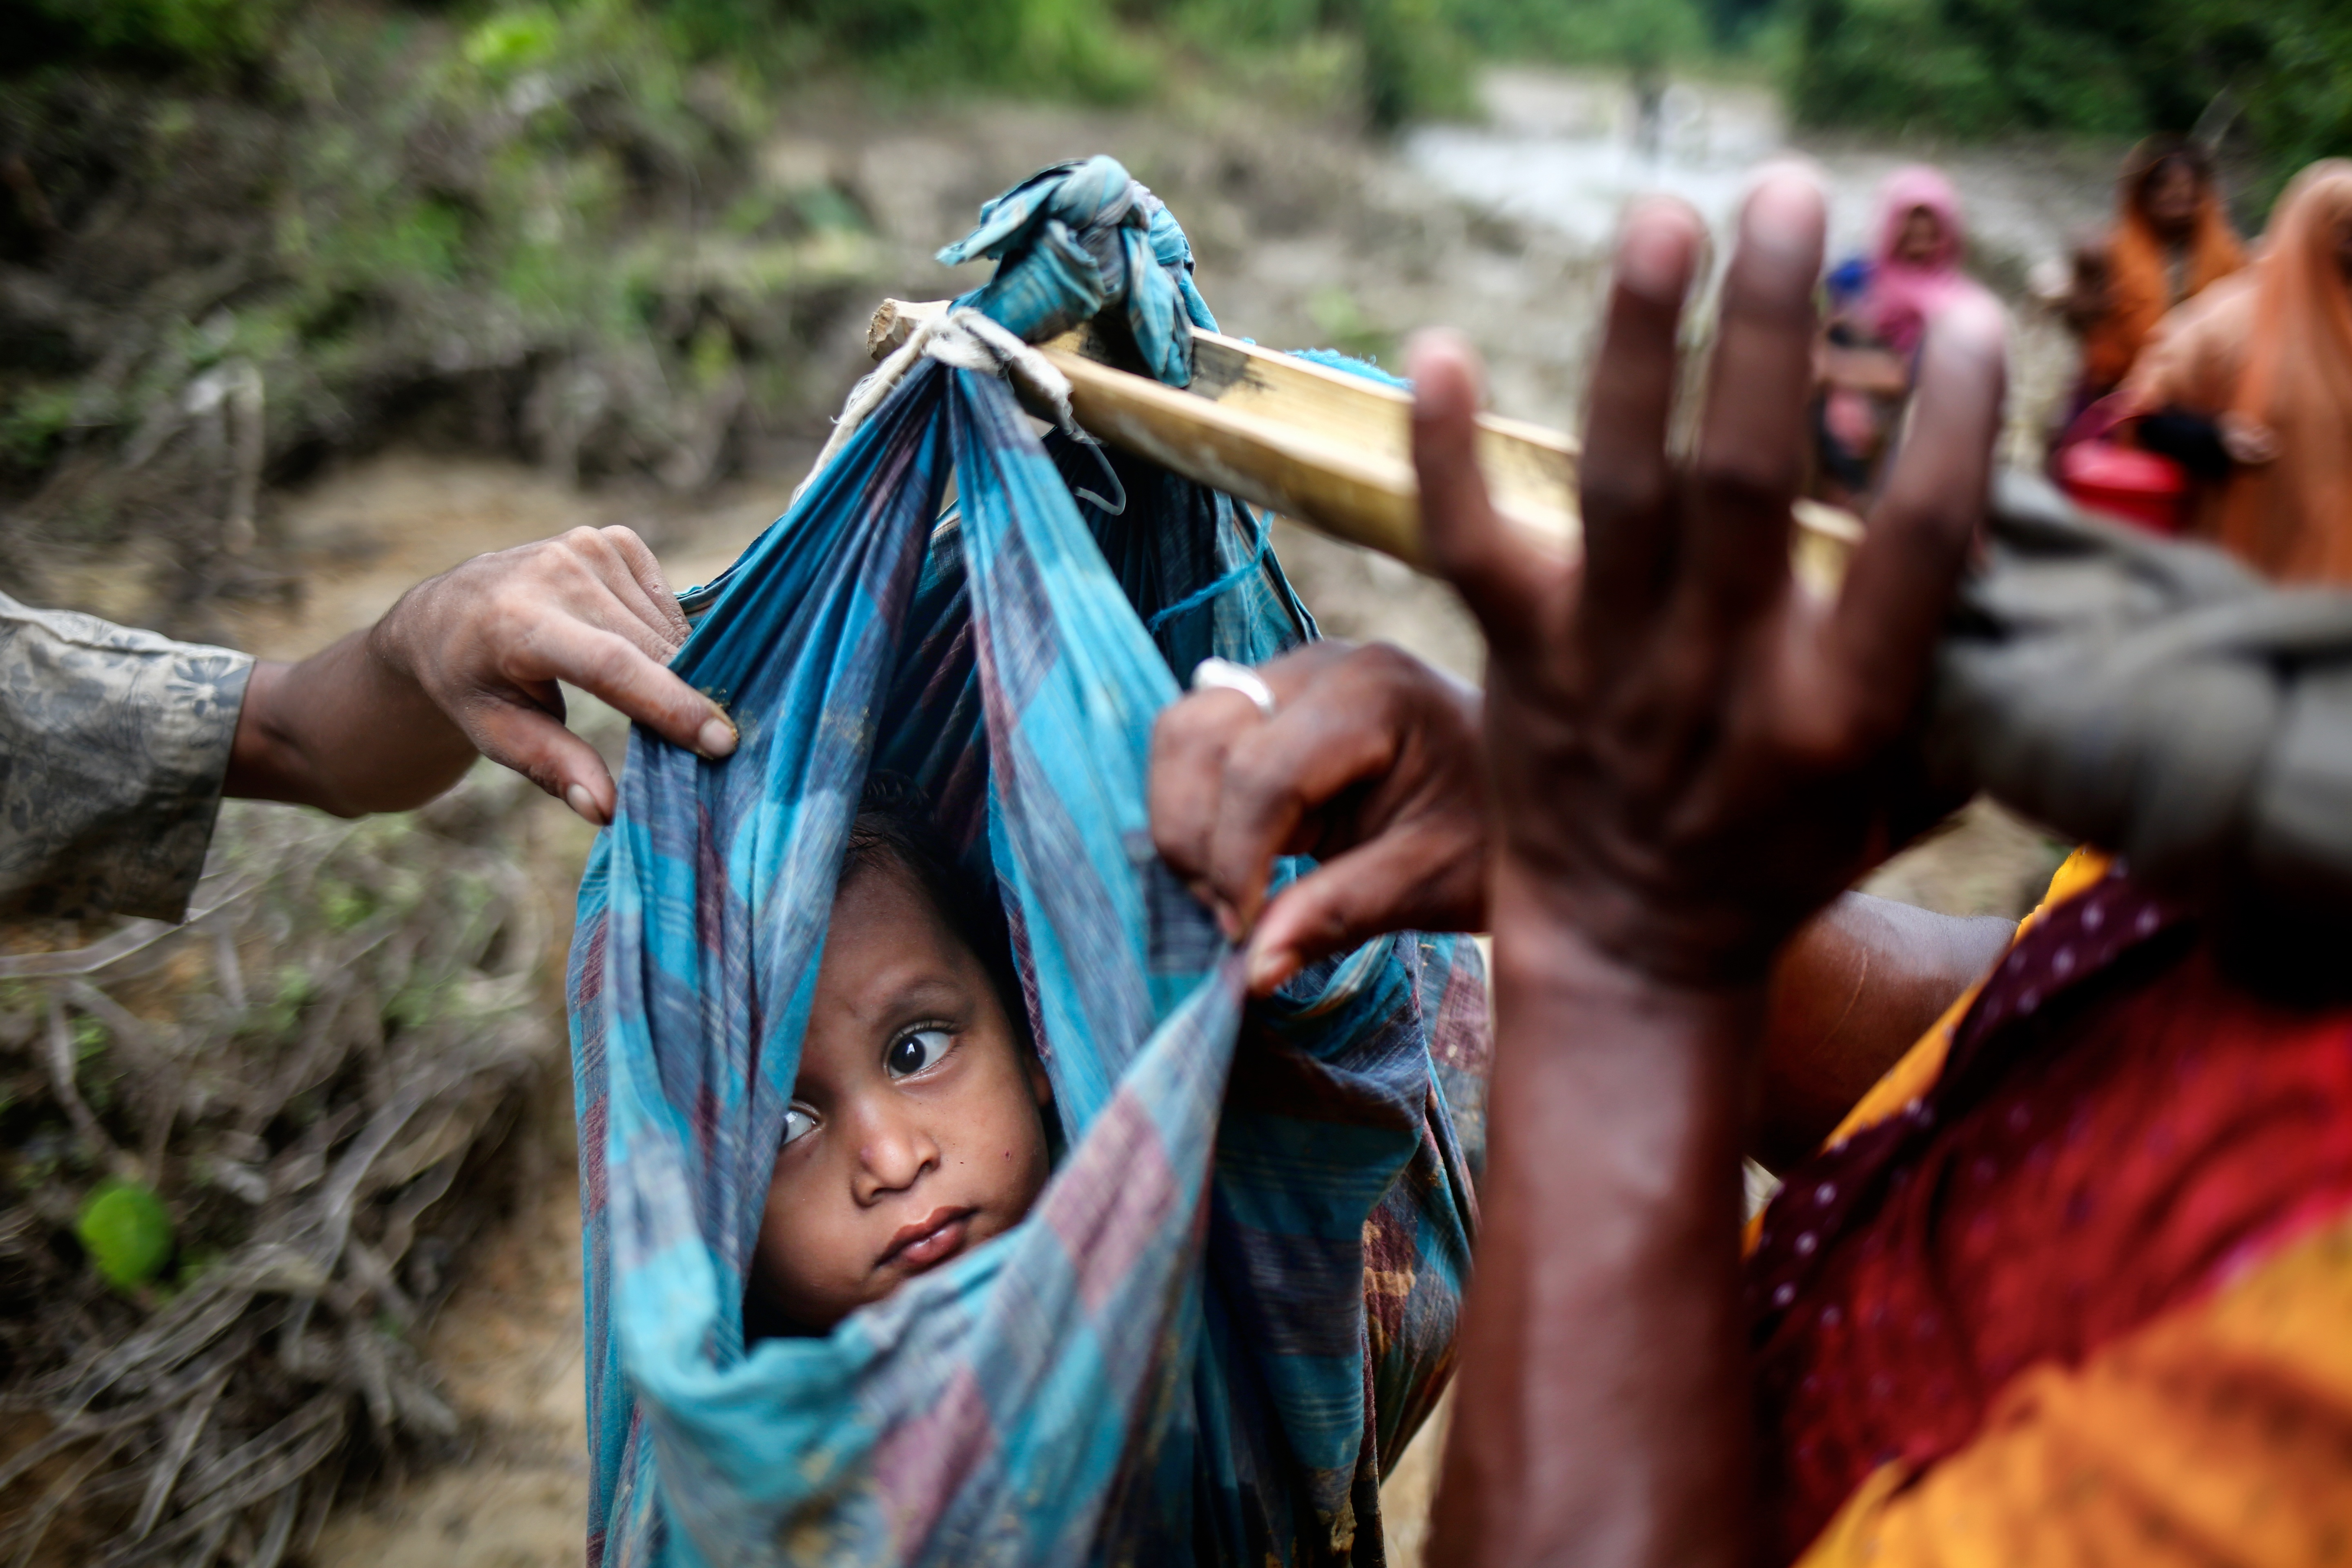 A Rohingya child looks up at the sky as they cross into Bangladesh from Myanmar